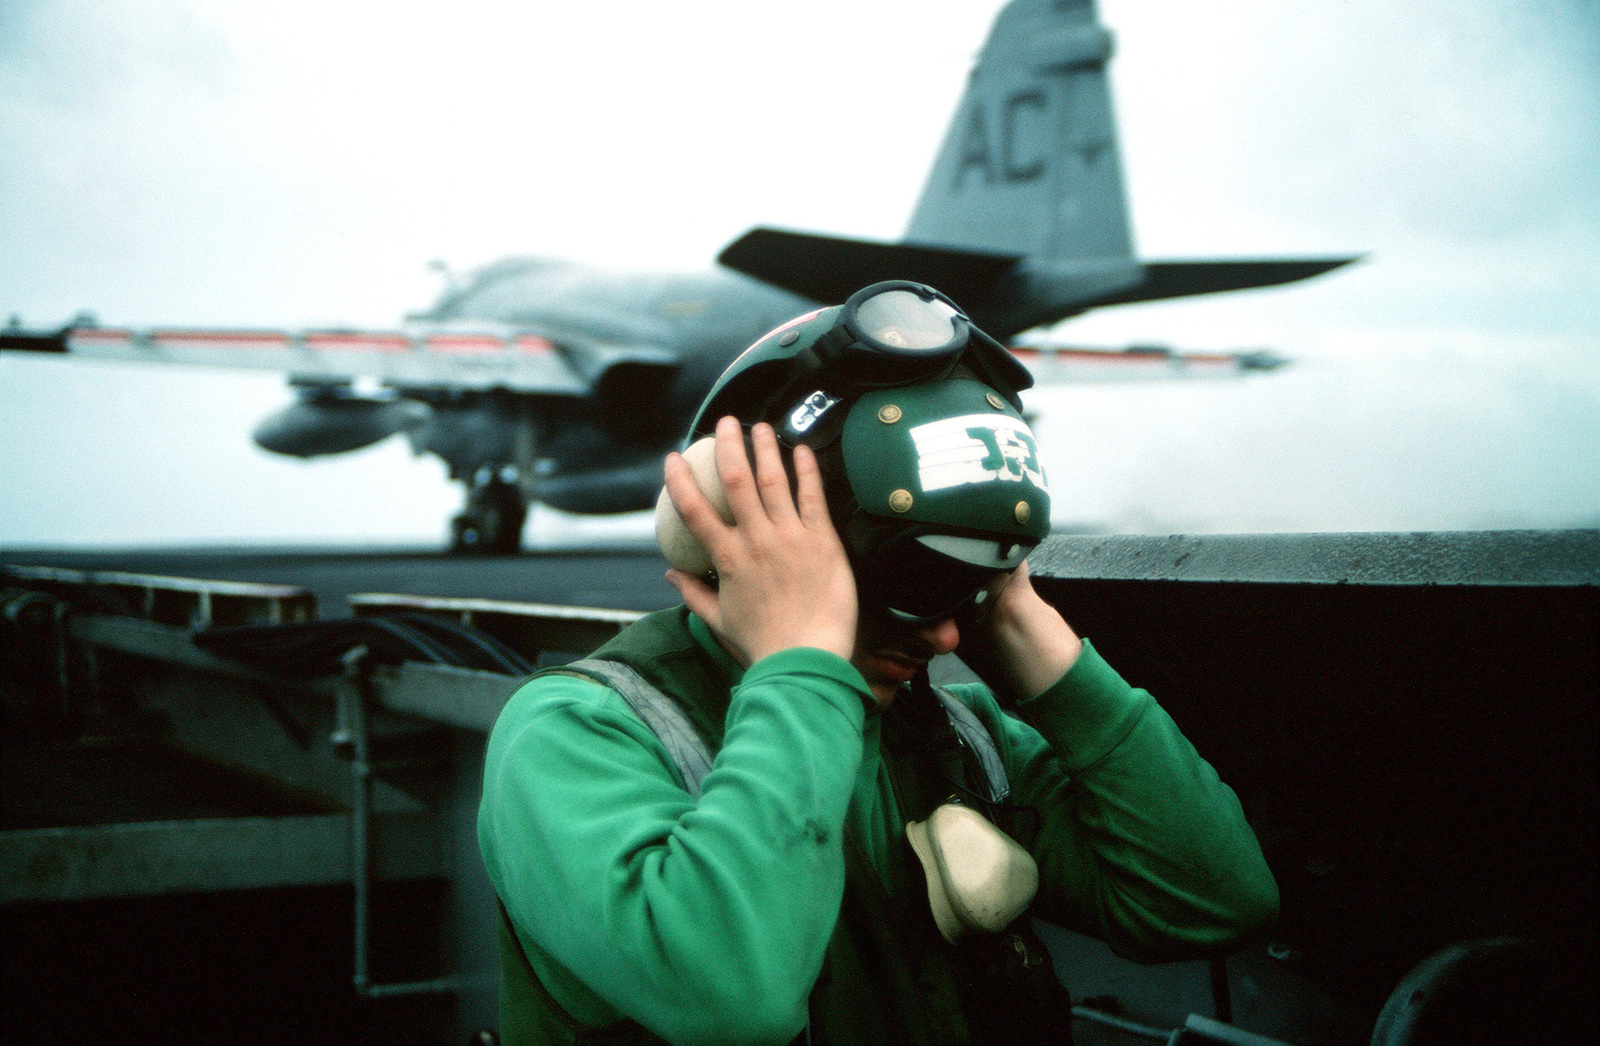 A flight deck crewman adjusts his hearing protectors while standing on a catwalk aboard the aircraft carrier USS JOHN F. KENNEDY (CV-67) during Fleet Ex 1-90. An Attack Squadron 75 (VA-75) A-6E Intruder aircraft is in the background